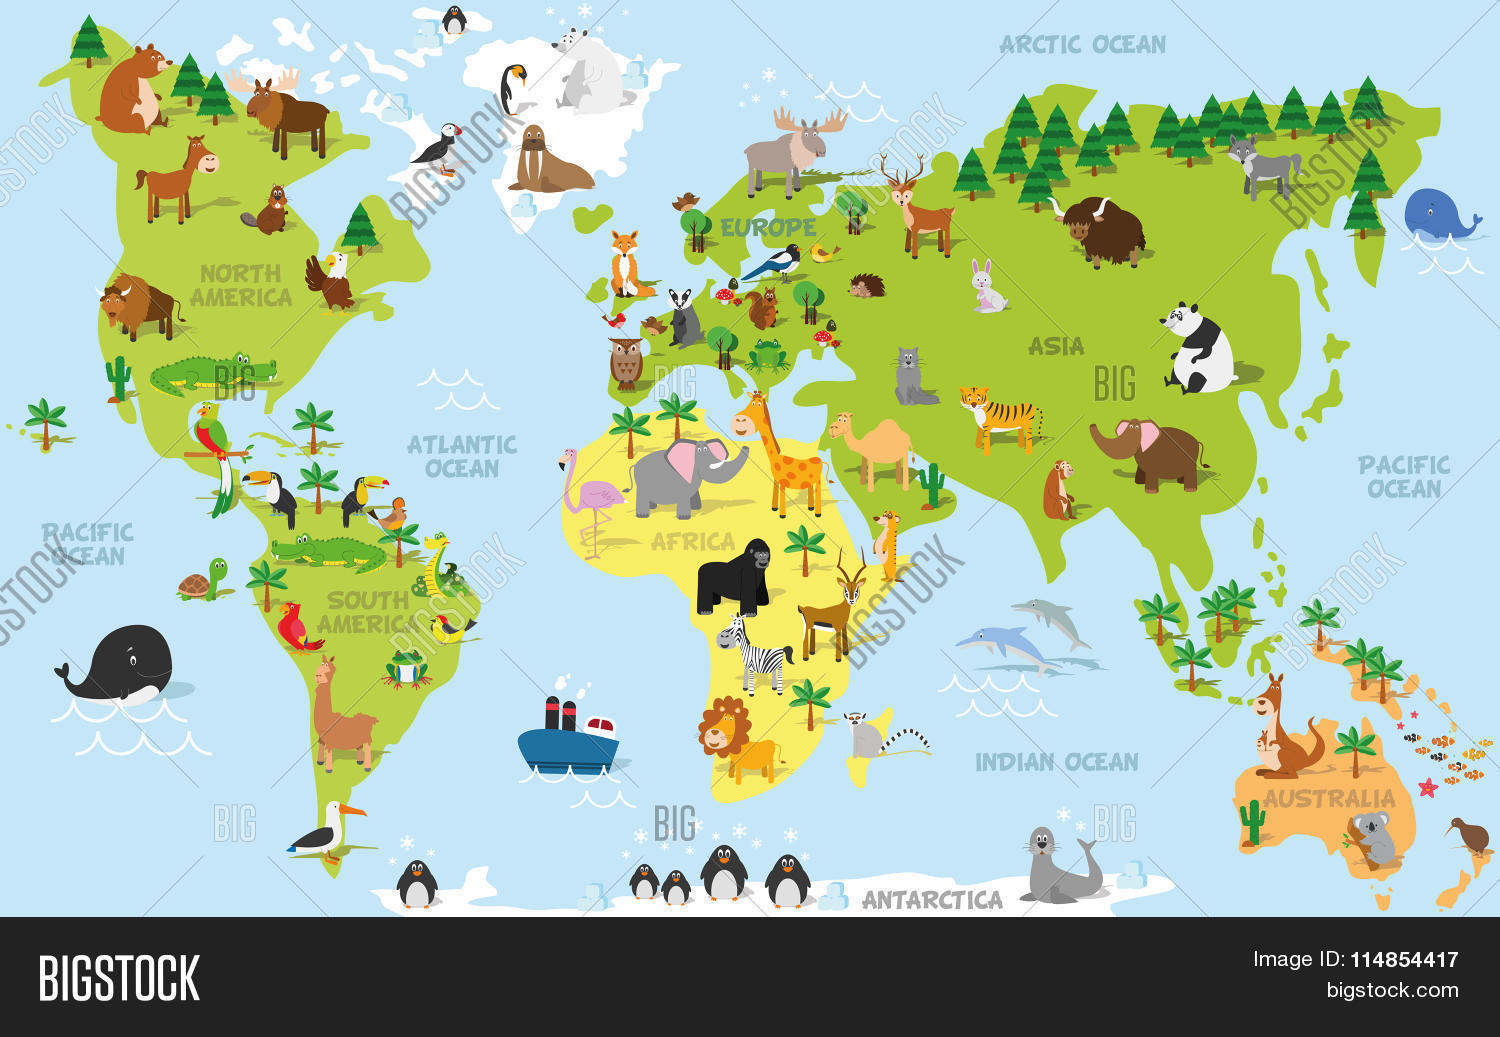 Funny cartoon world map vector photo bigstock funny cartoon world map with traditional animals of all the continents and oceans gumiabroncs Choice Image